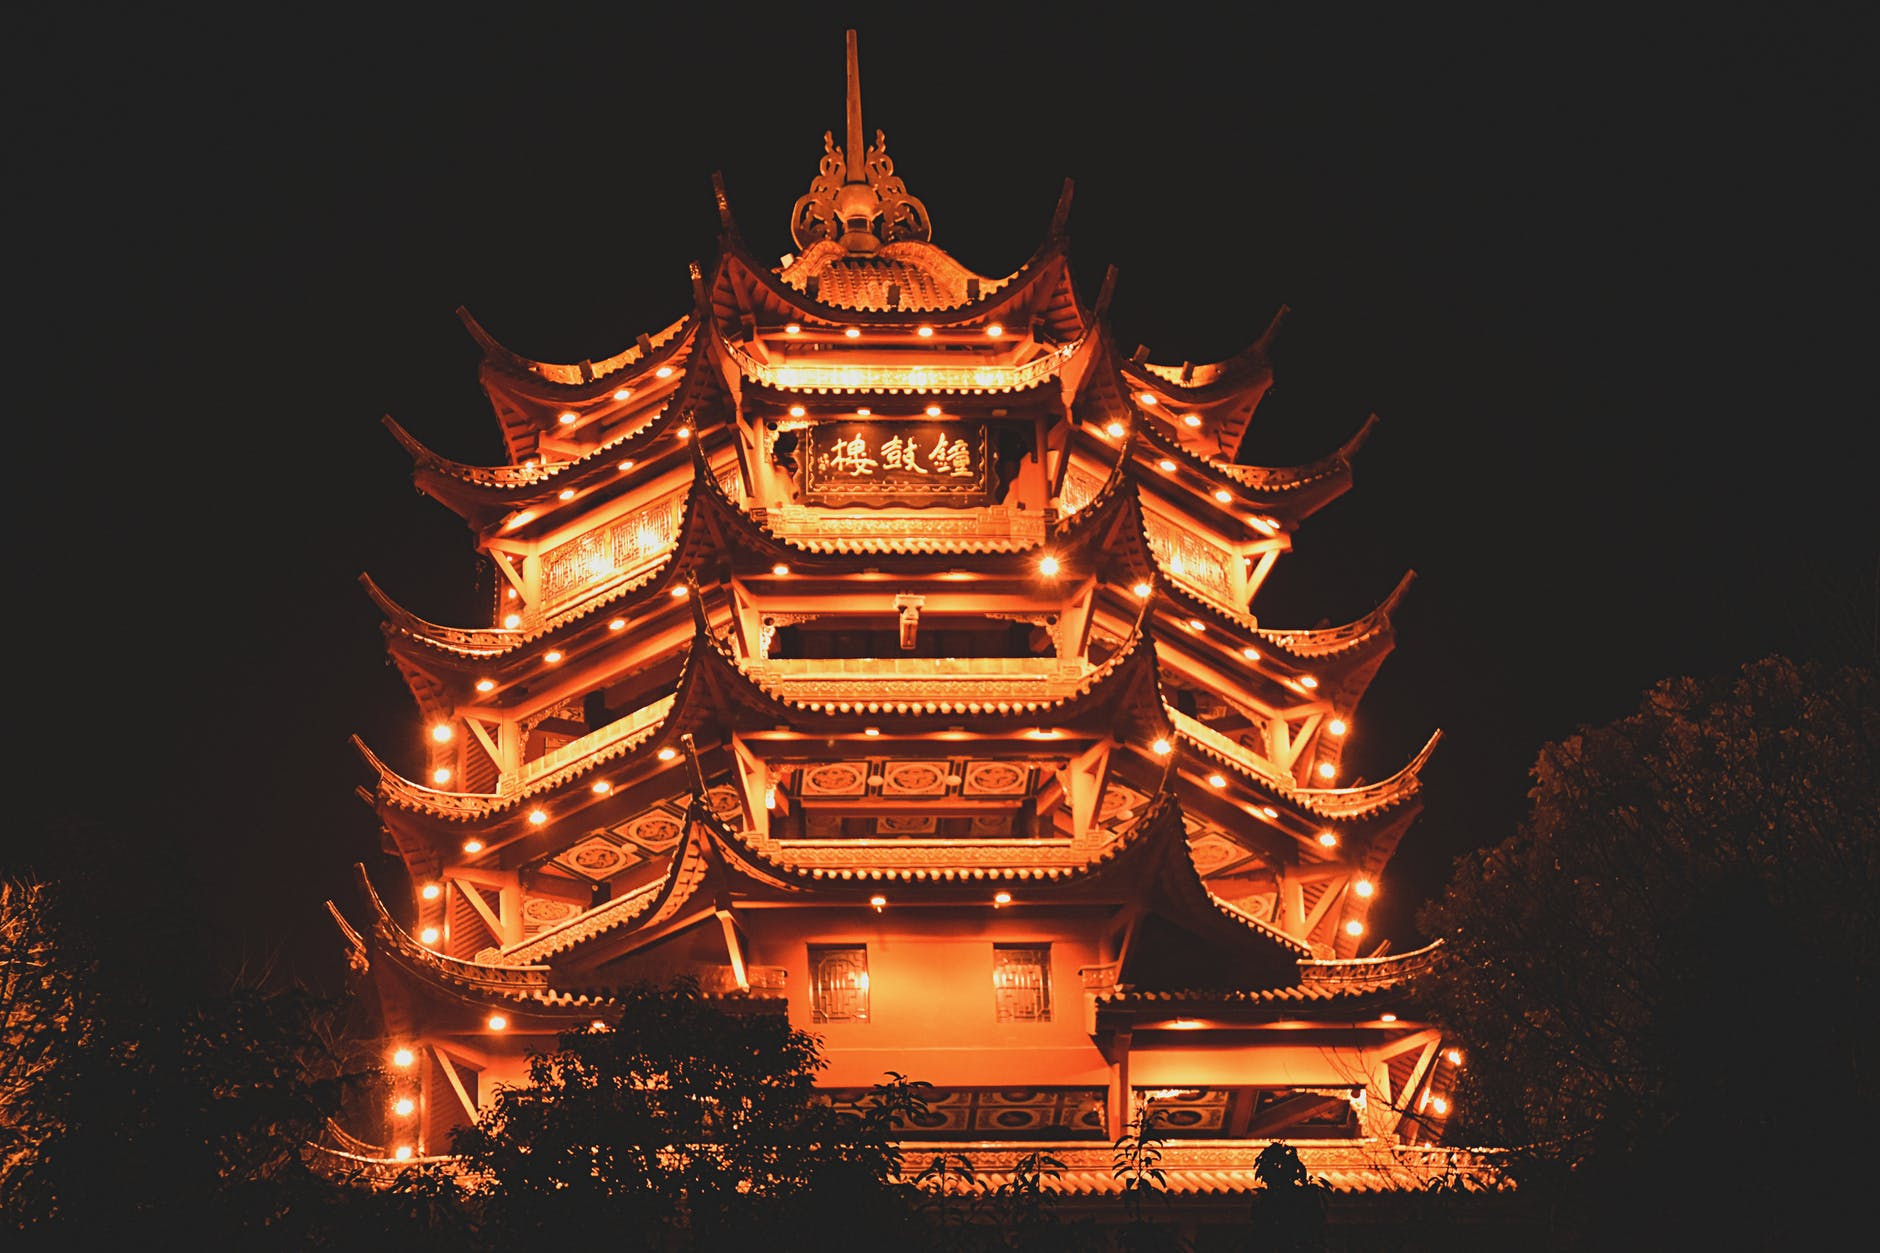 lighted pagoda at night